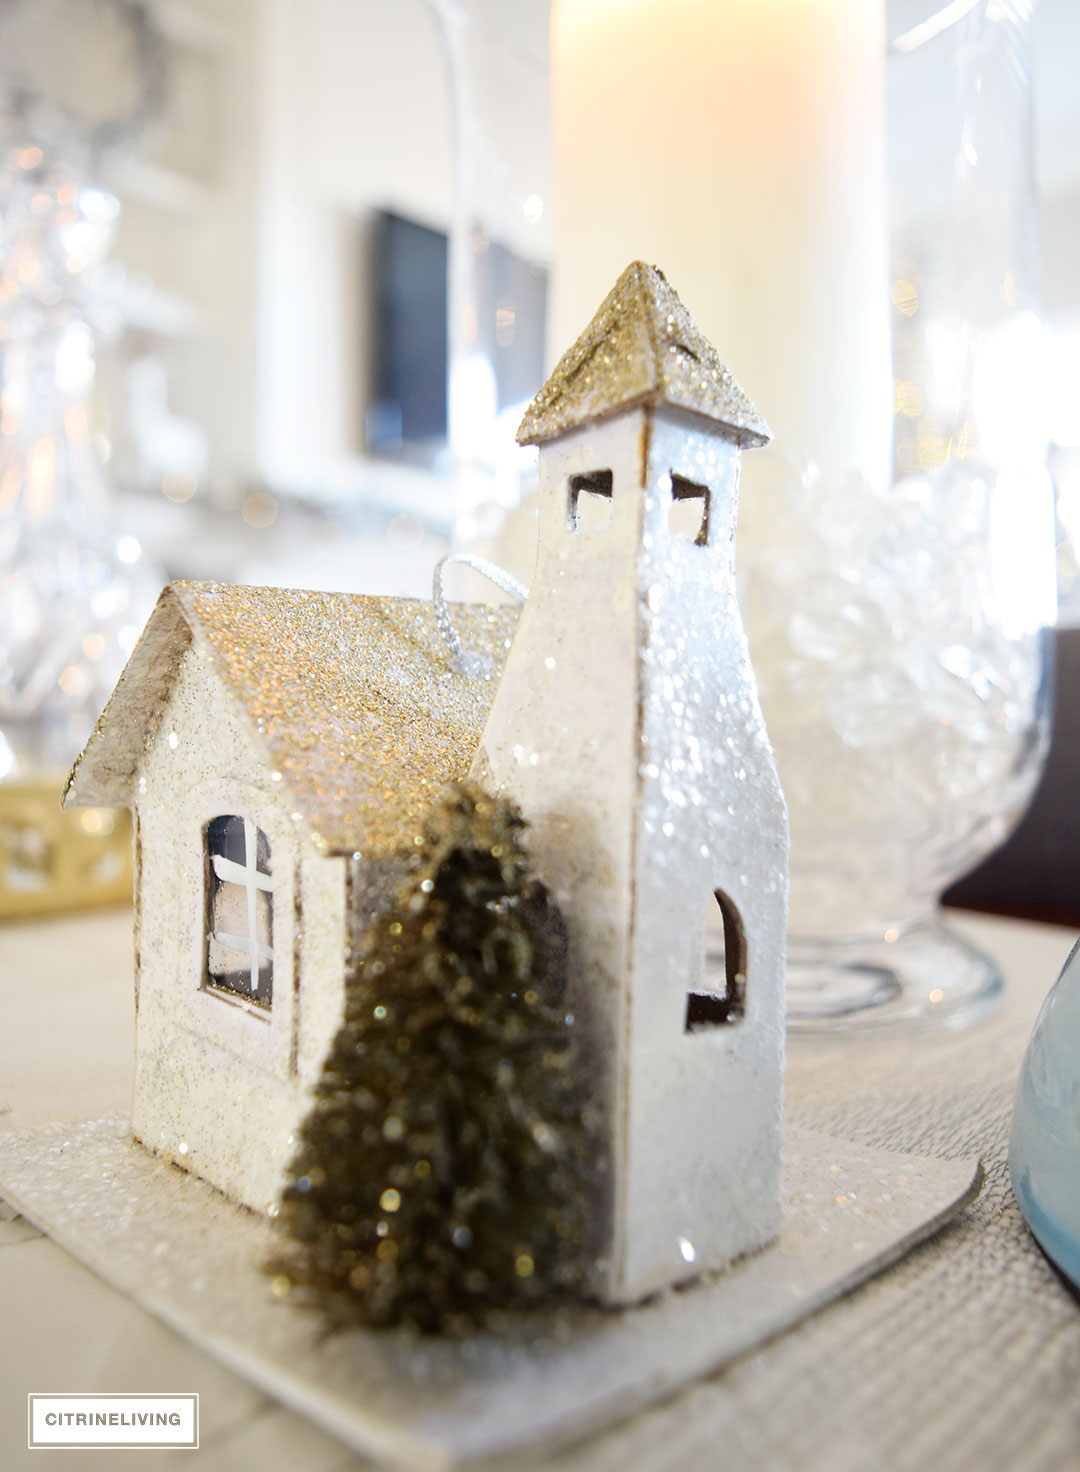 Christmas Home Tour - metallics and icy blue create a chic Holiday theme